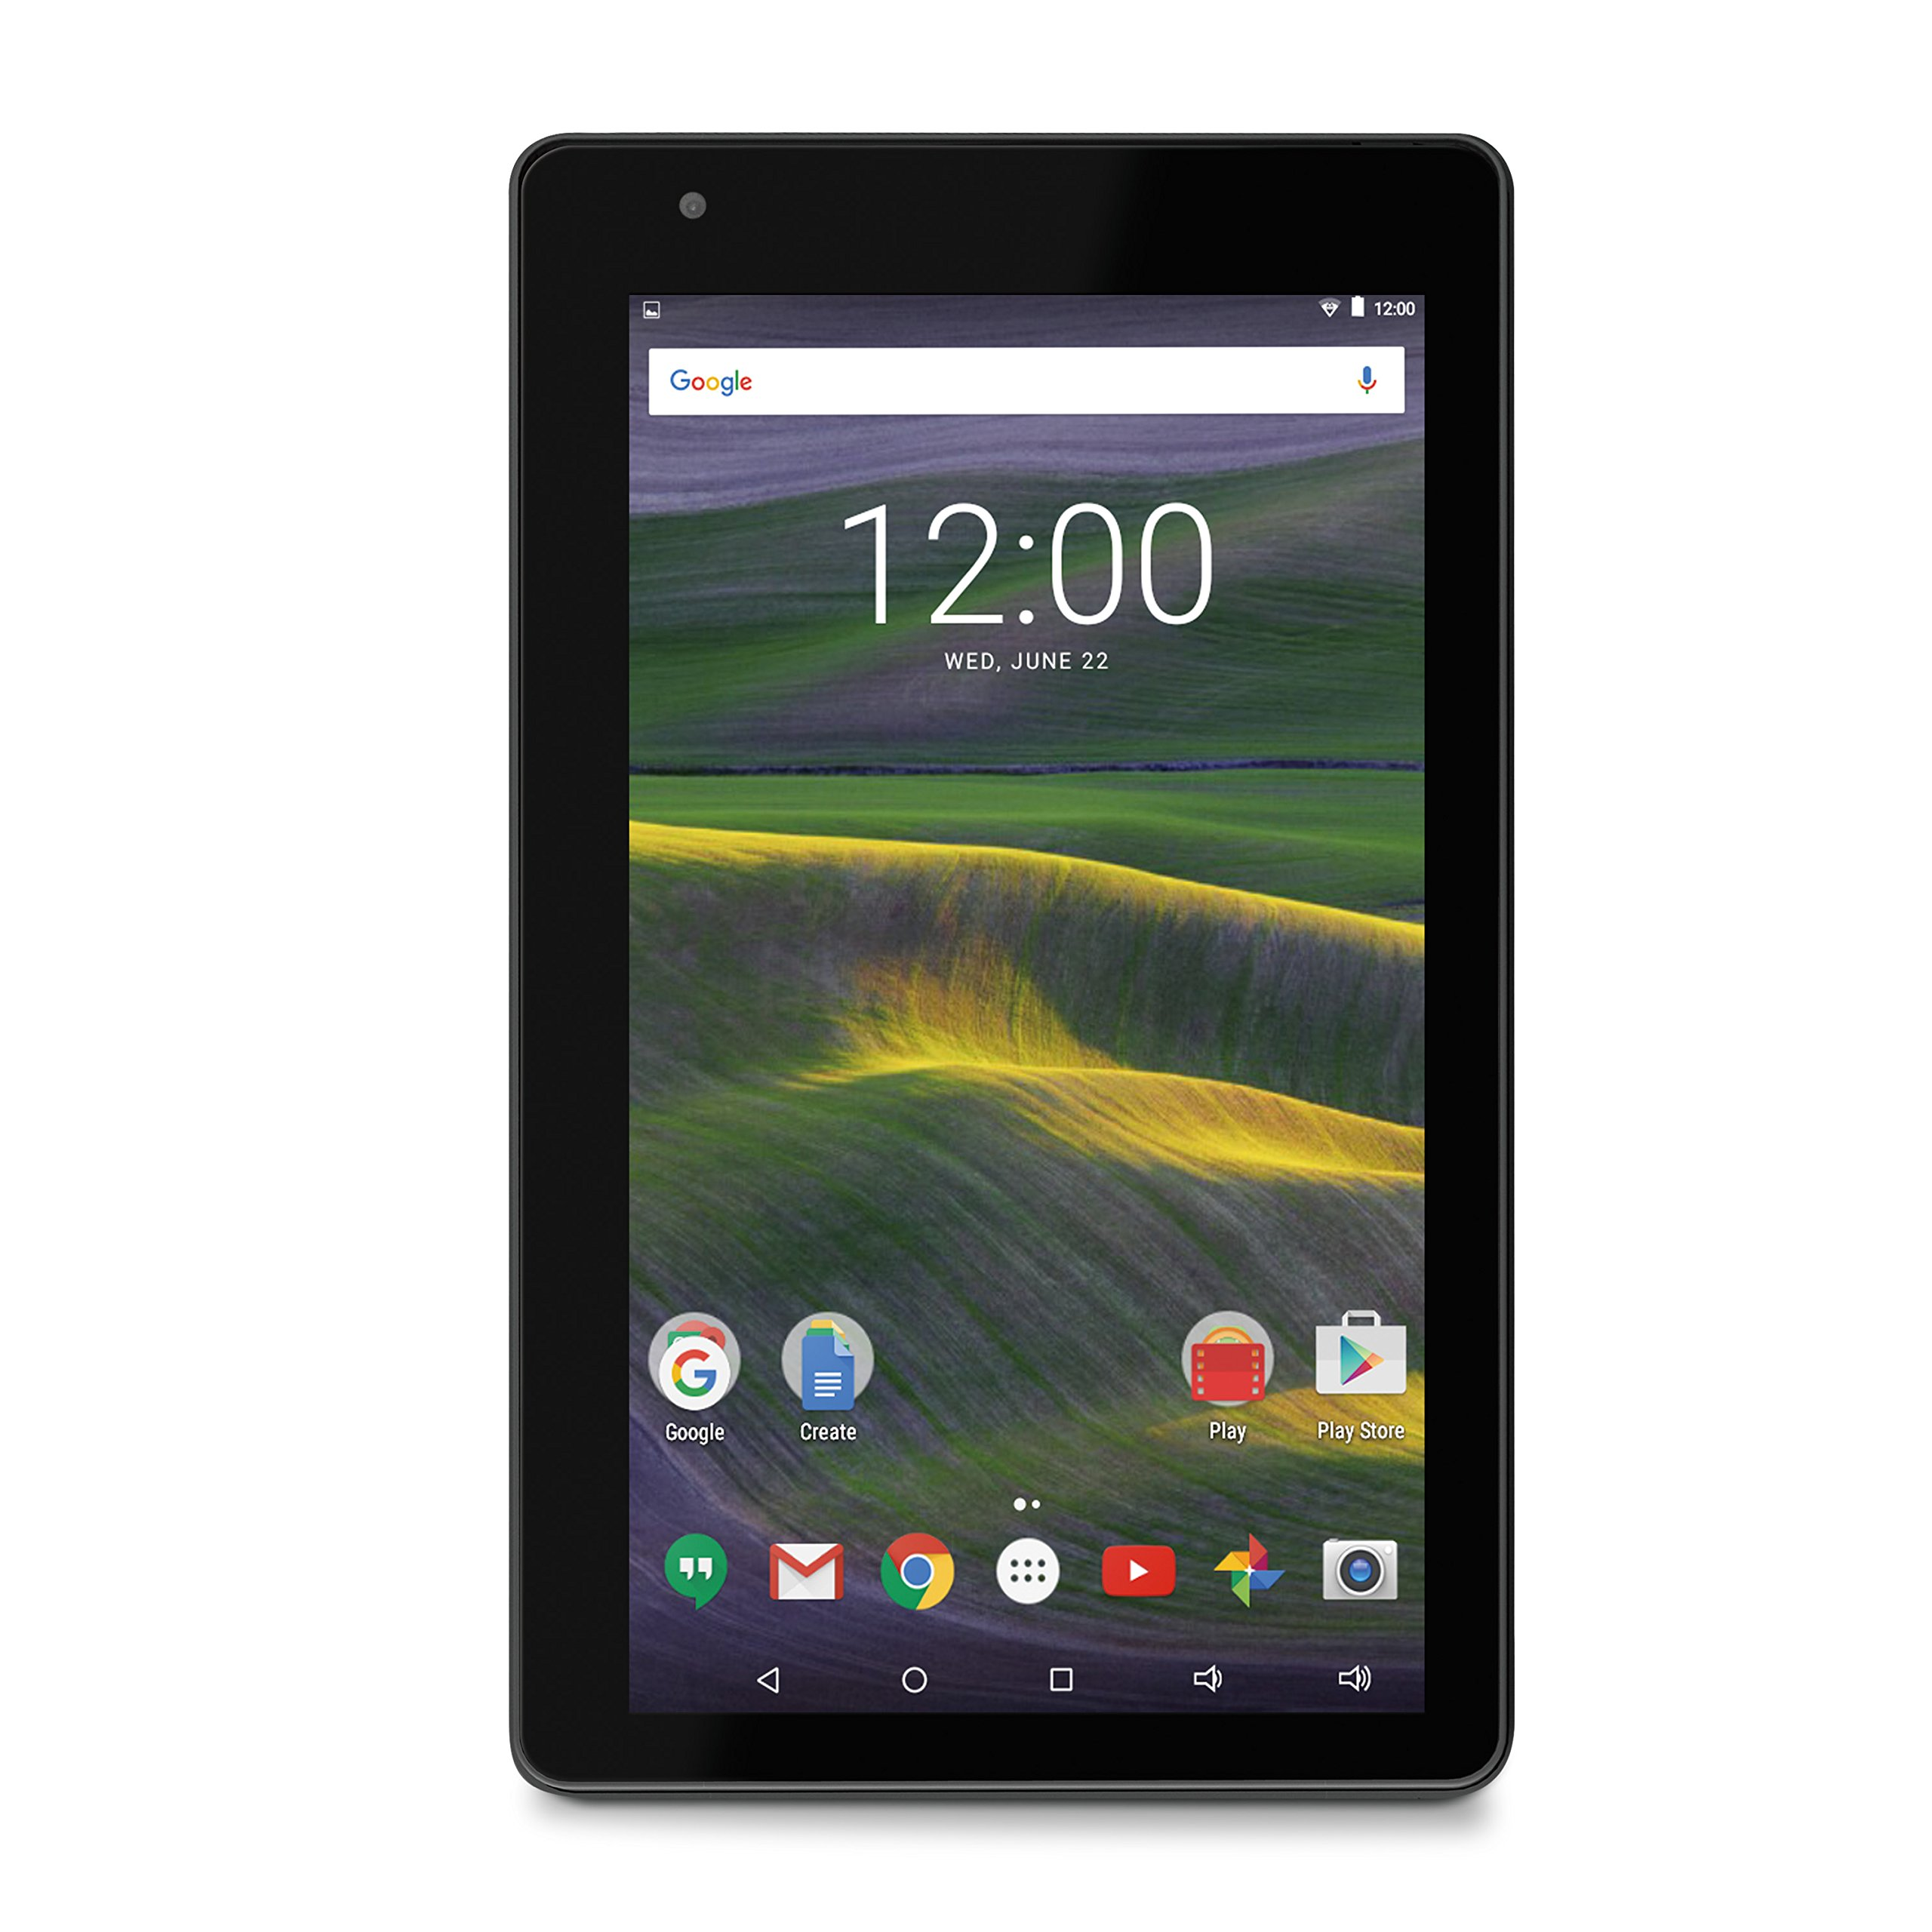 RCT6673W43M 16GB RCA Mercury II 7'' Android Tablet; Android 6.0 Marshmallow; Google Play; Dual Camera